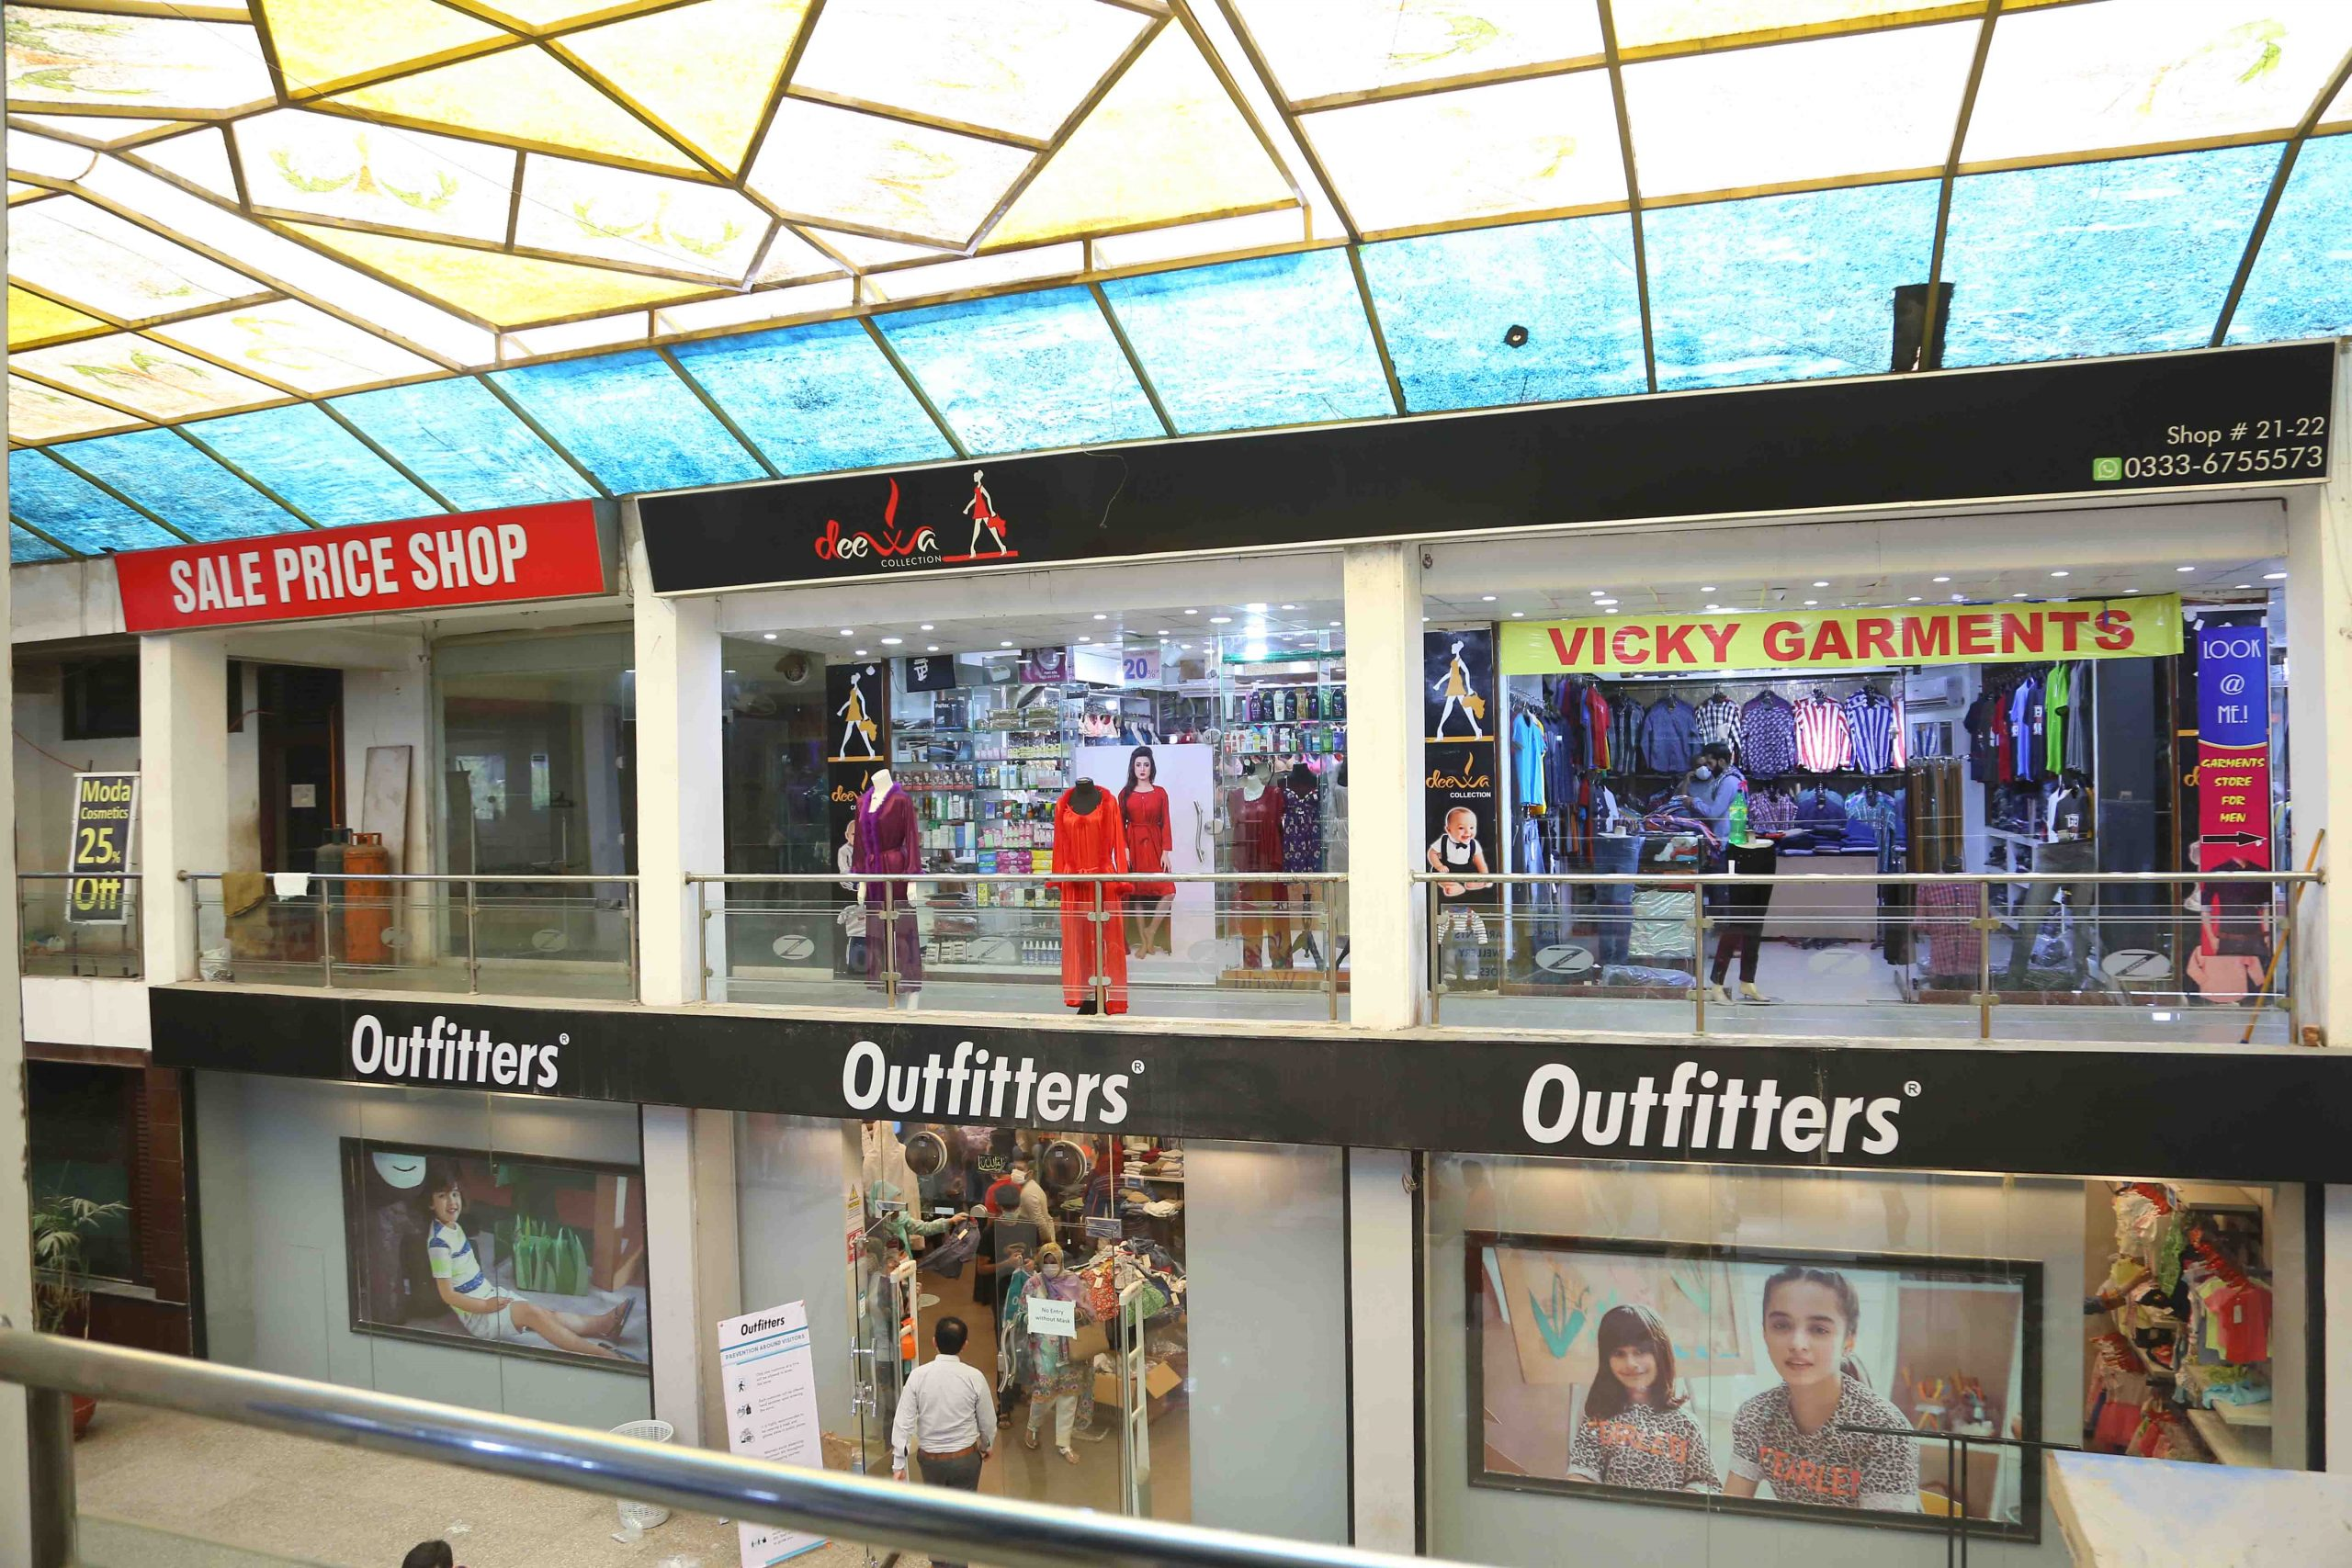 Zarkon Plaza 1 Saddar Rawalpindi Interior Views - FAH33M (6) - Q-L0-BO